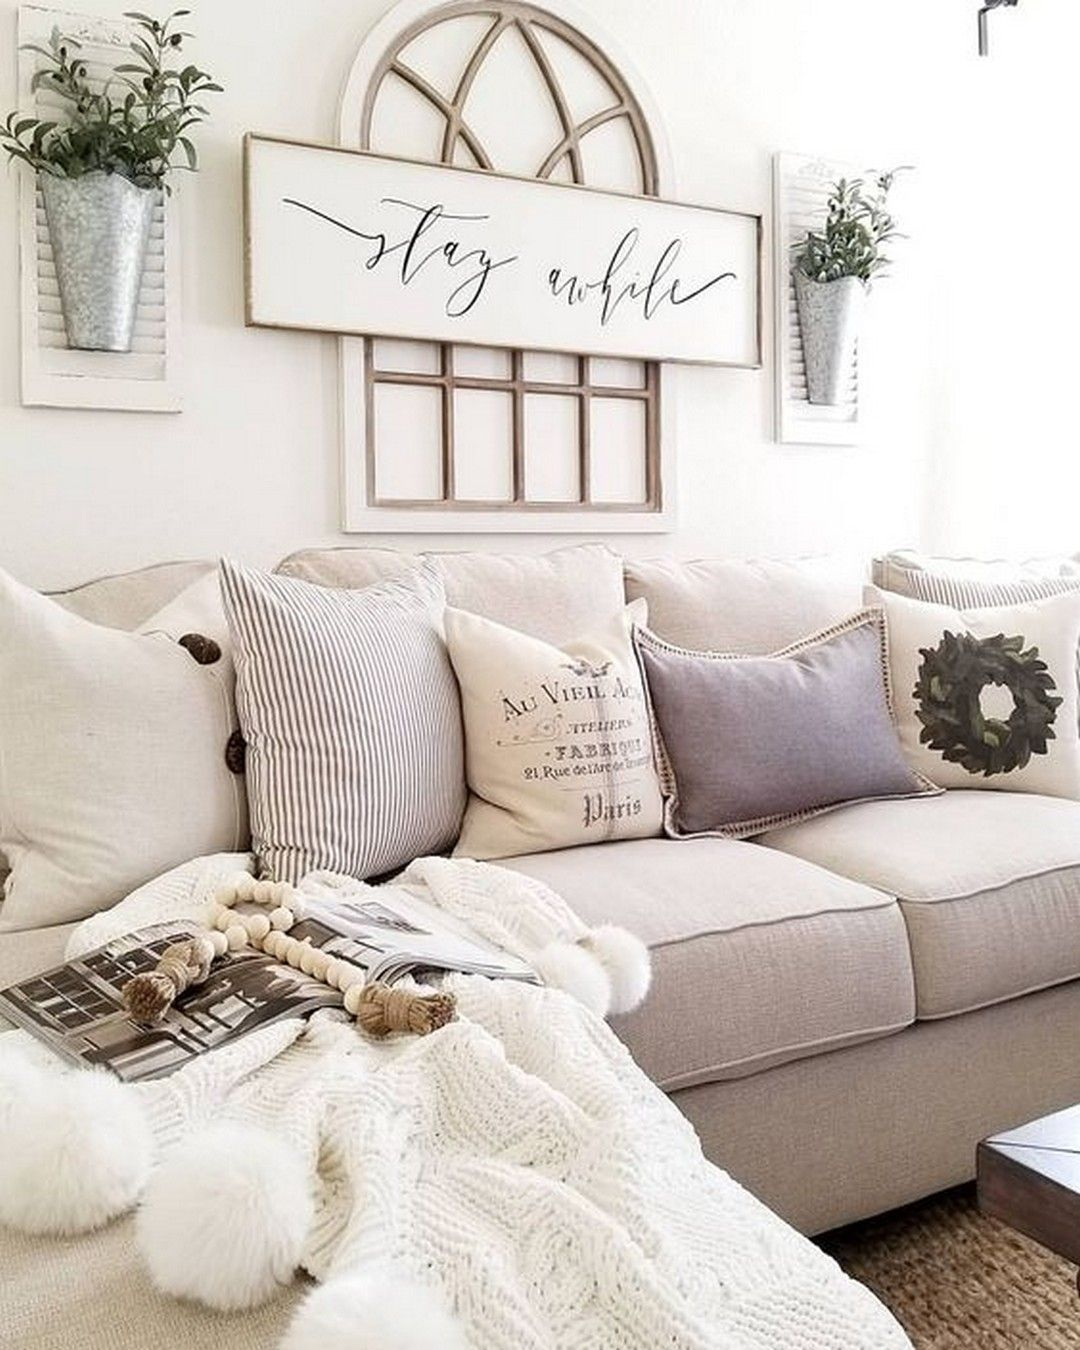 Minimalist interior living room furniture home tour sofas tips spring cleaning also rustic arch mirrors with hanging planters modern farm house rh pinterest